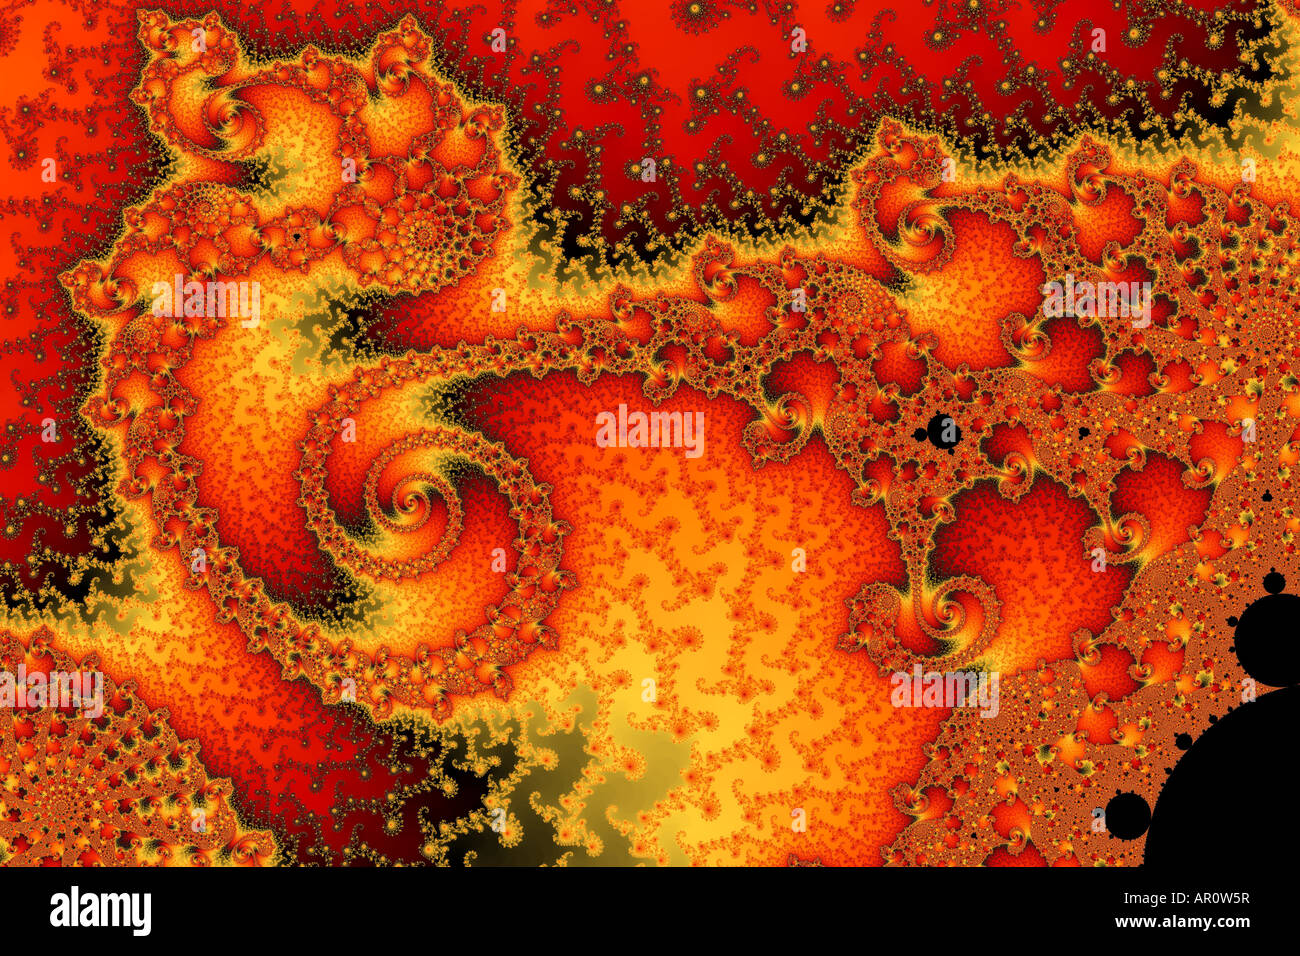 This fractal is beautiful, yet utter chaos! Stock Photo